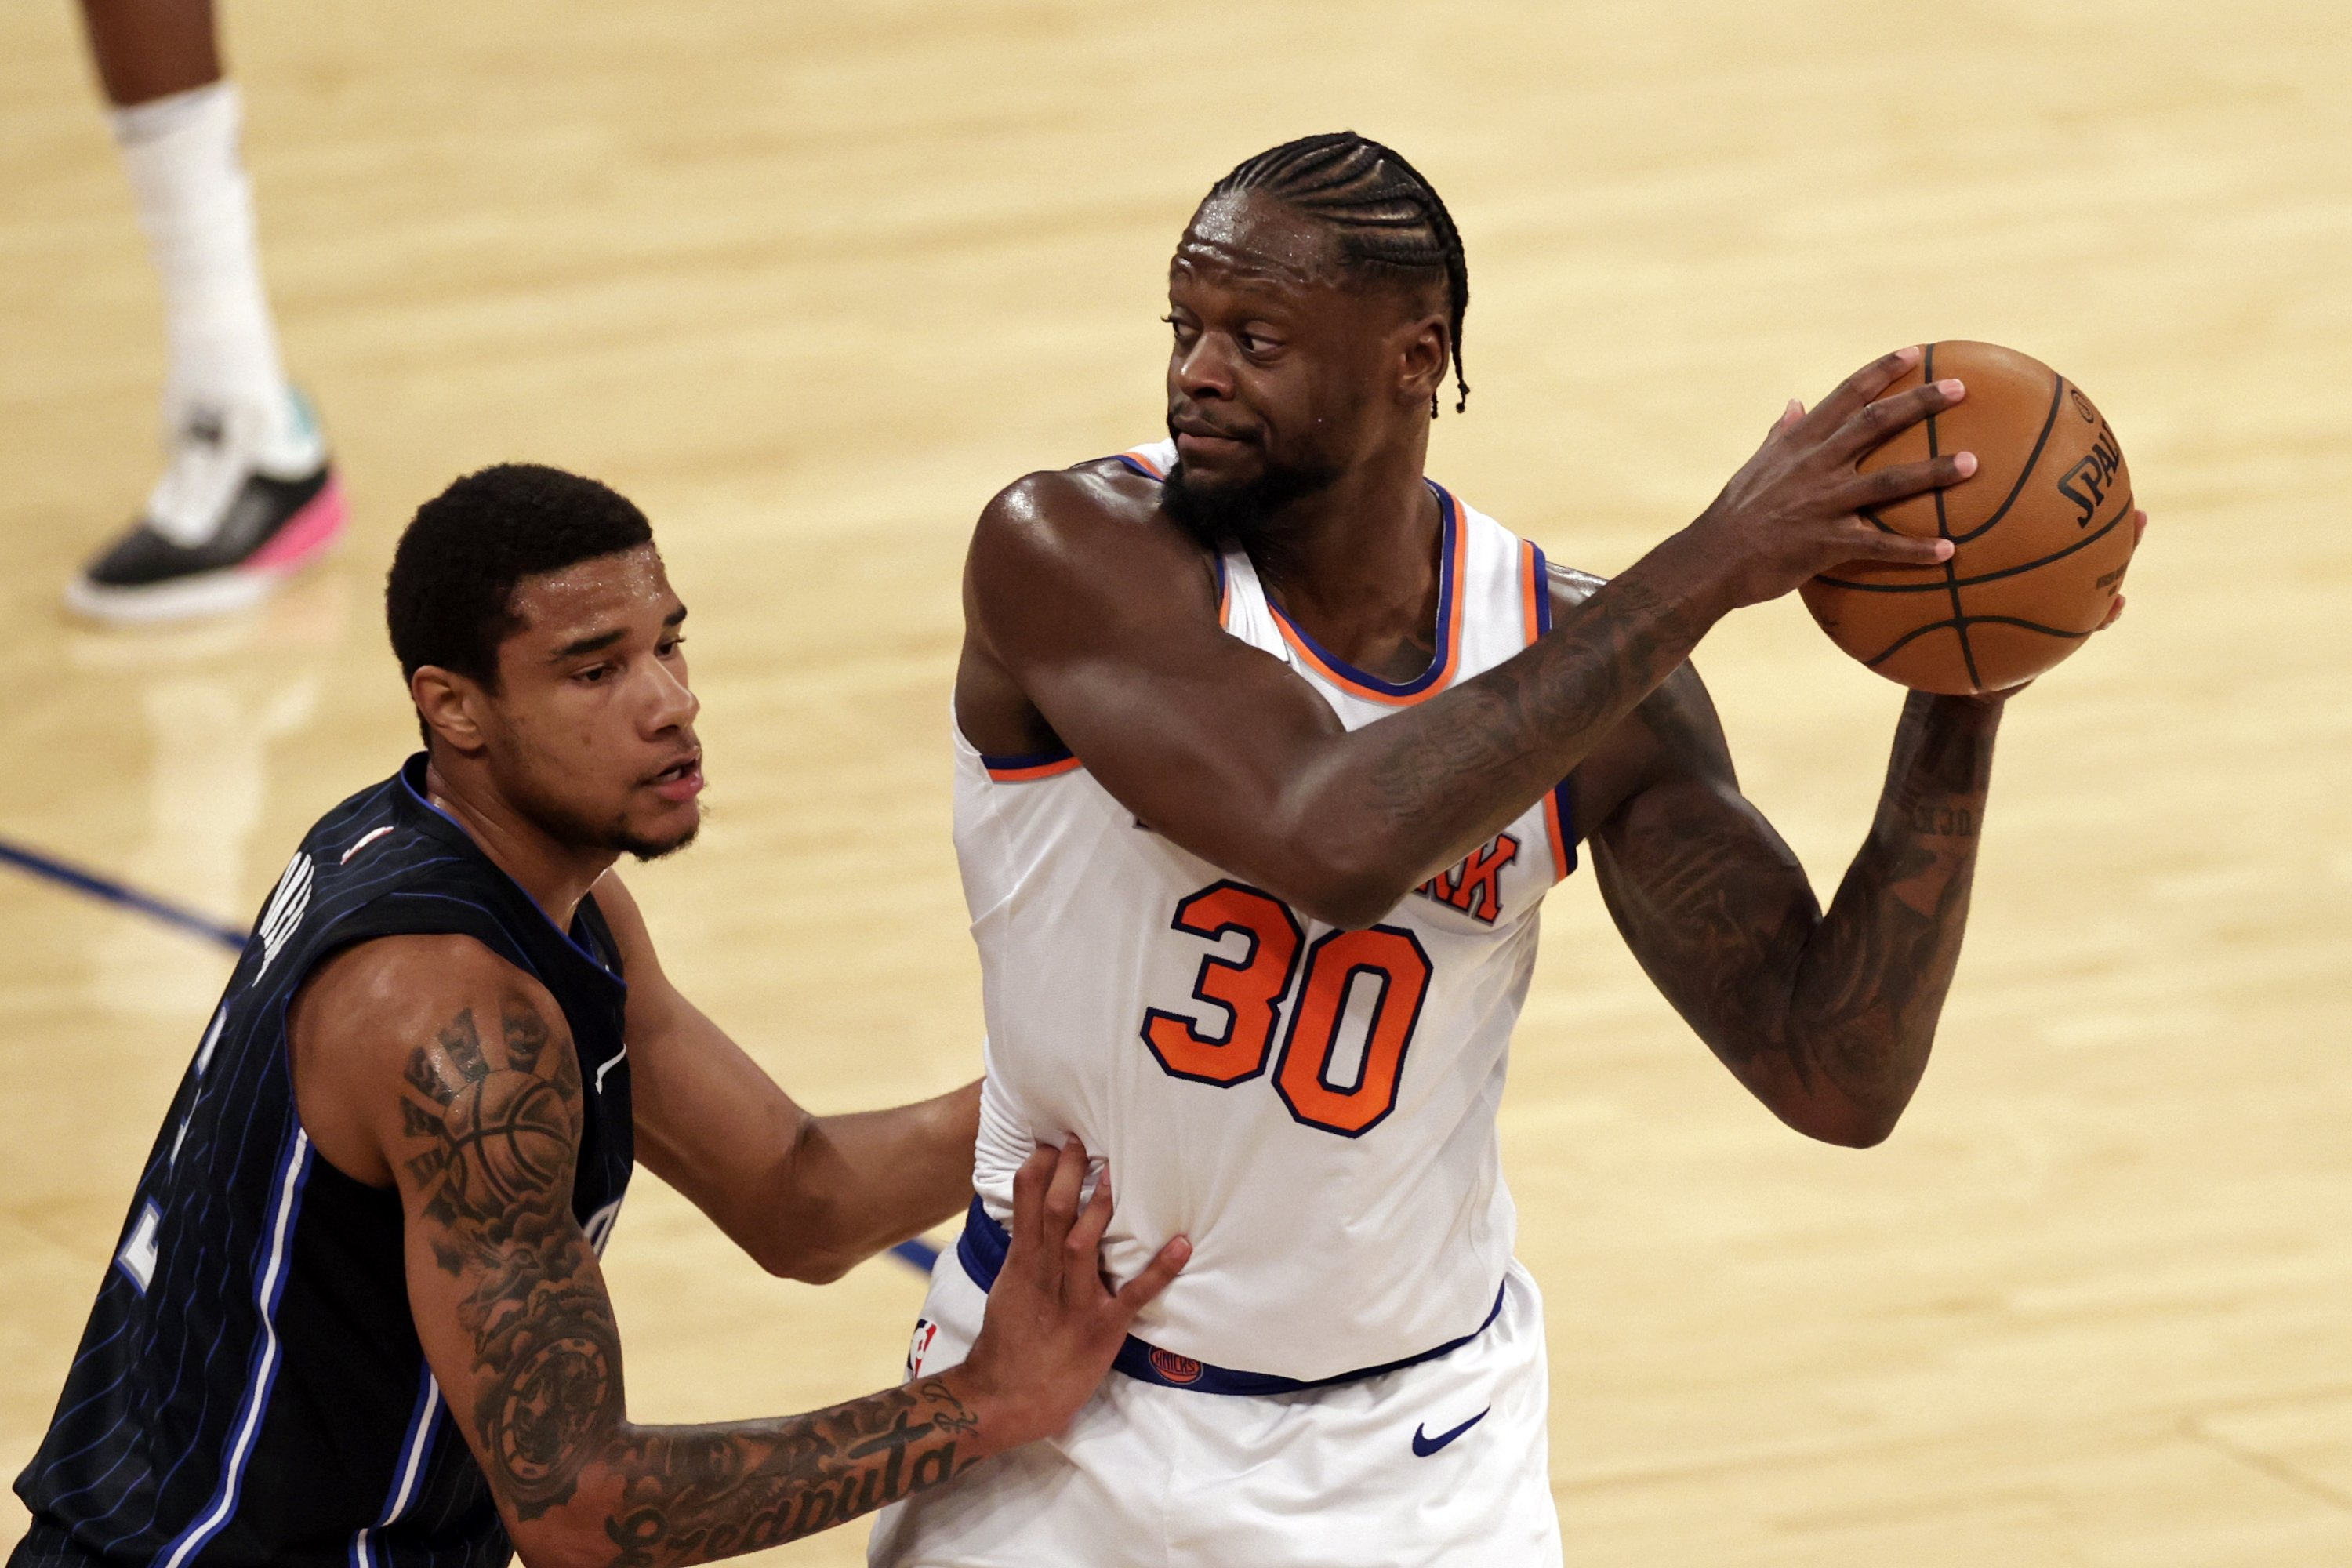 New York Knicks forward Julius Randle (R) looks to pass against the Orlando Magic during an NBA basketball game, in New York, U.S., March 18, 2021. (Reuters Photo)